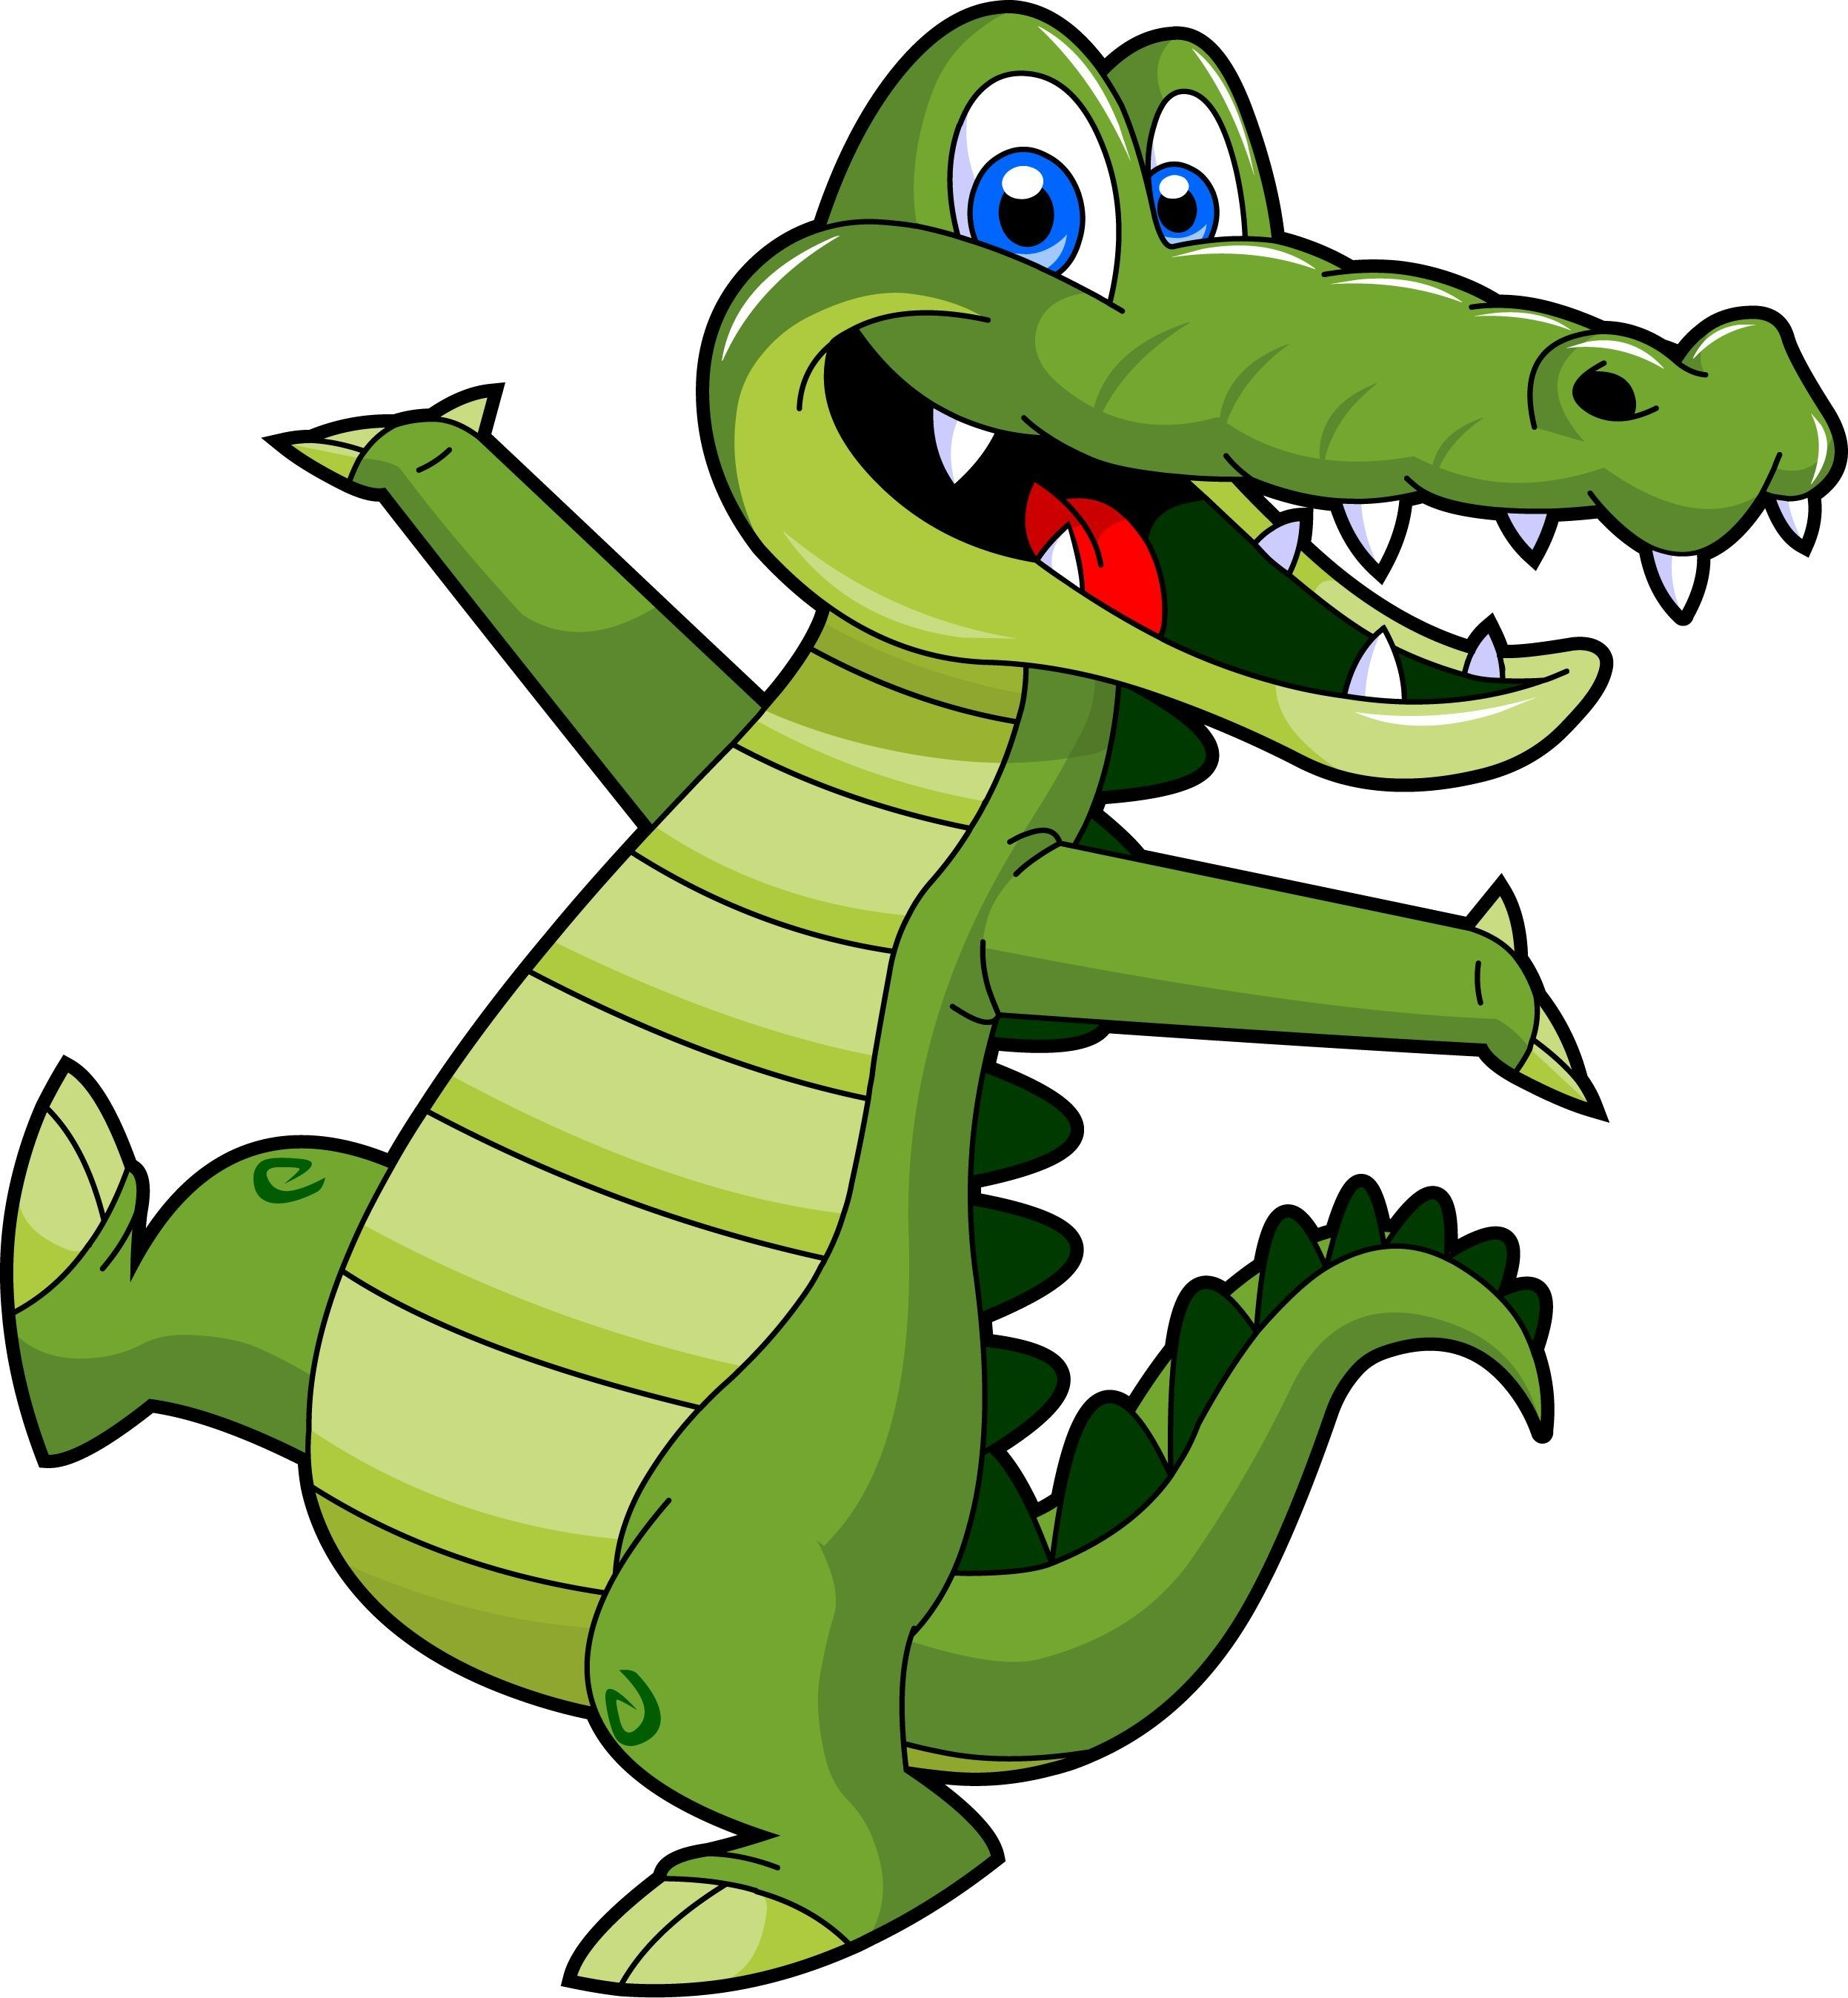 crocodile clip art alligator clip art jpg alligators pinterest rh pinterest com clip art alligators and crocodiles clipart alligator mouth